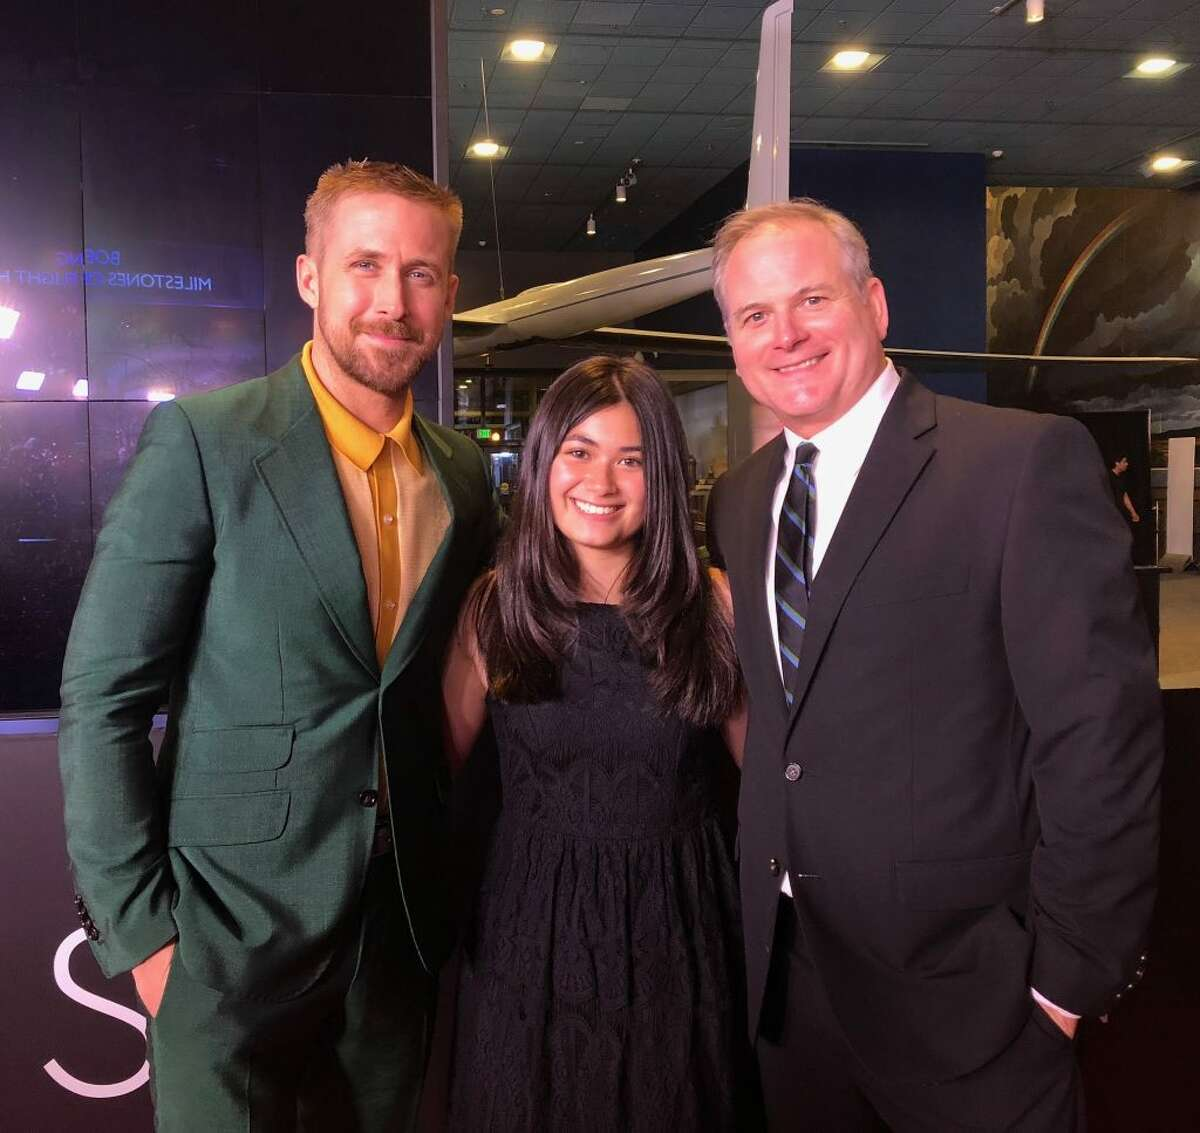 Ridgefield resident Chris Calle, right, stands with his daughter Arianna, middle, and actor Ryan Gosling, left, at the premiere of